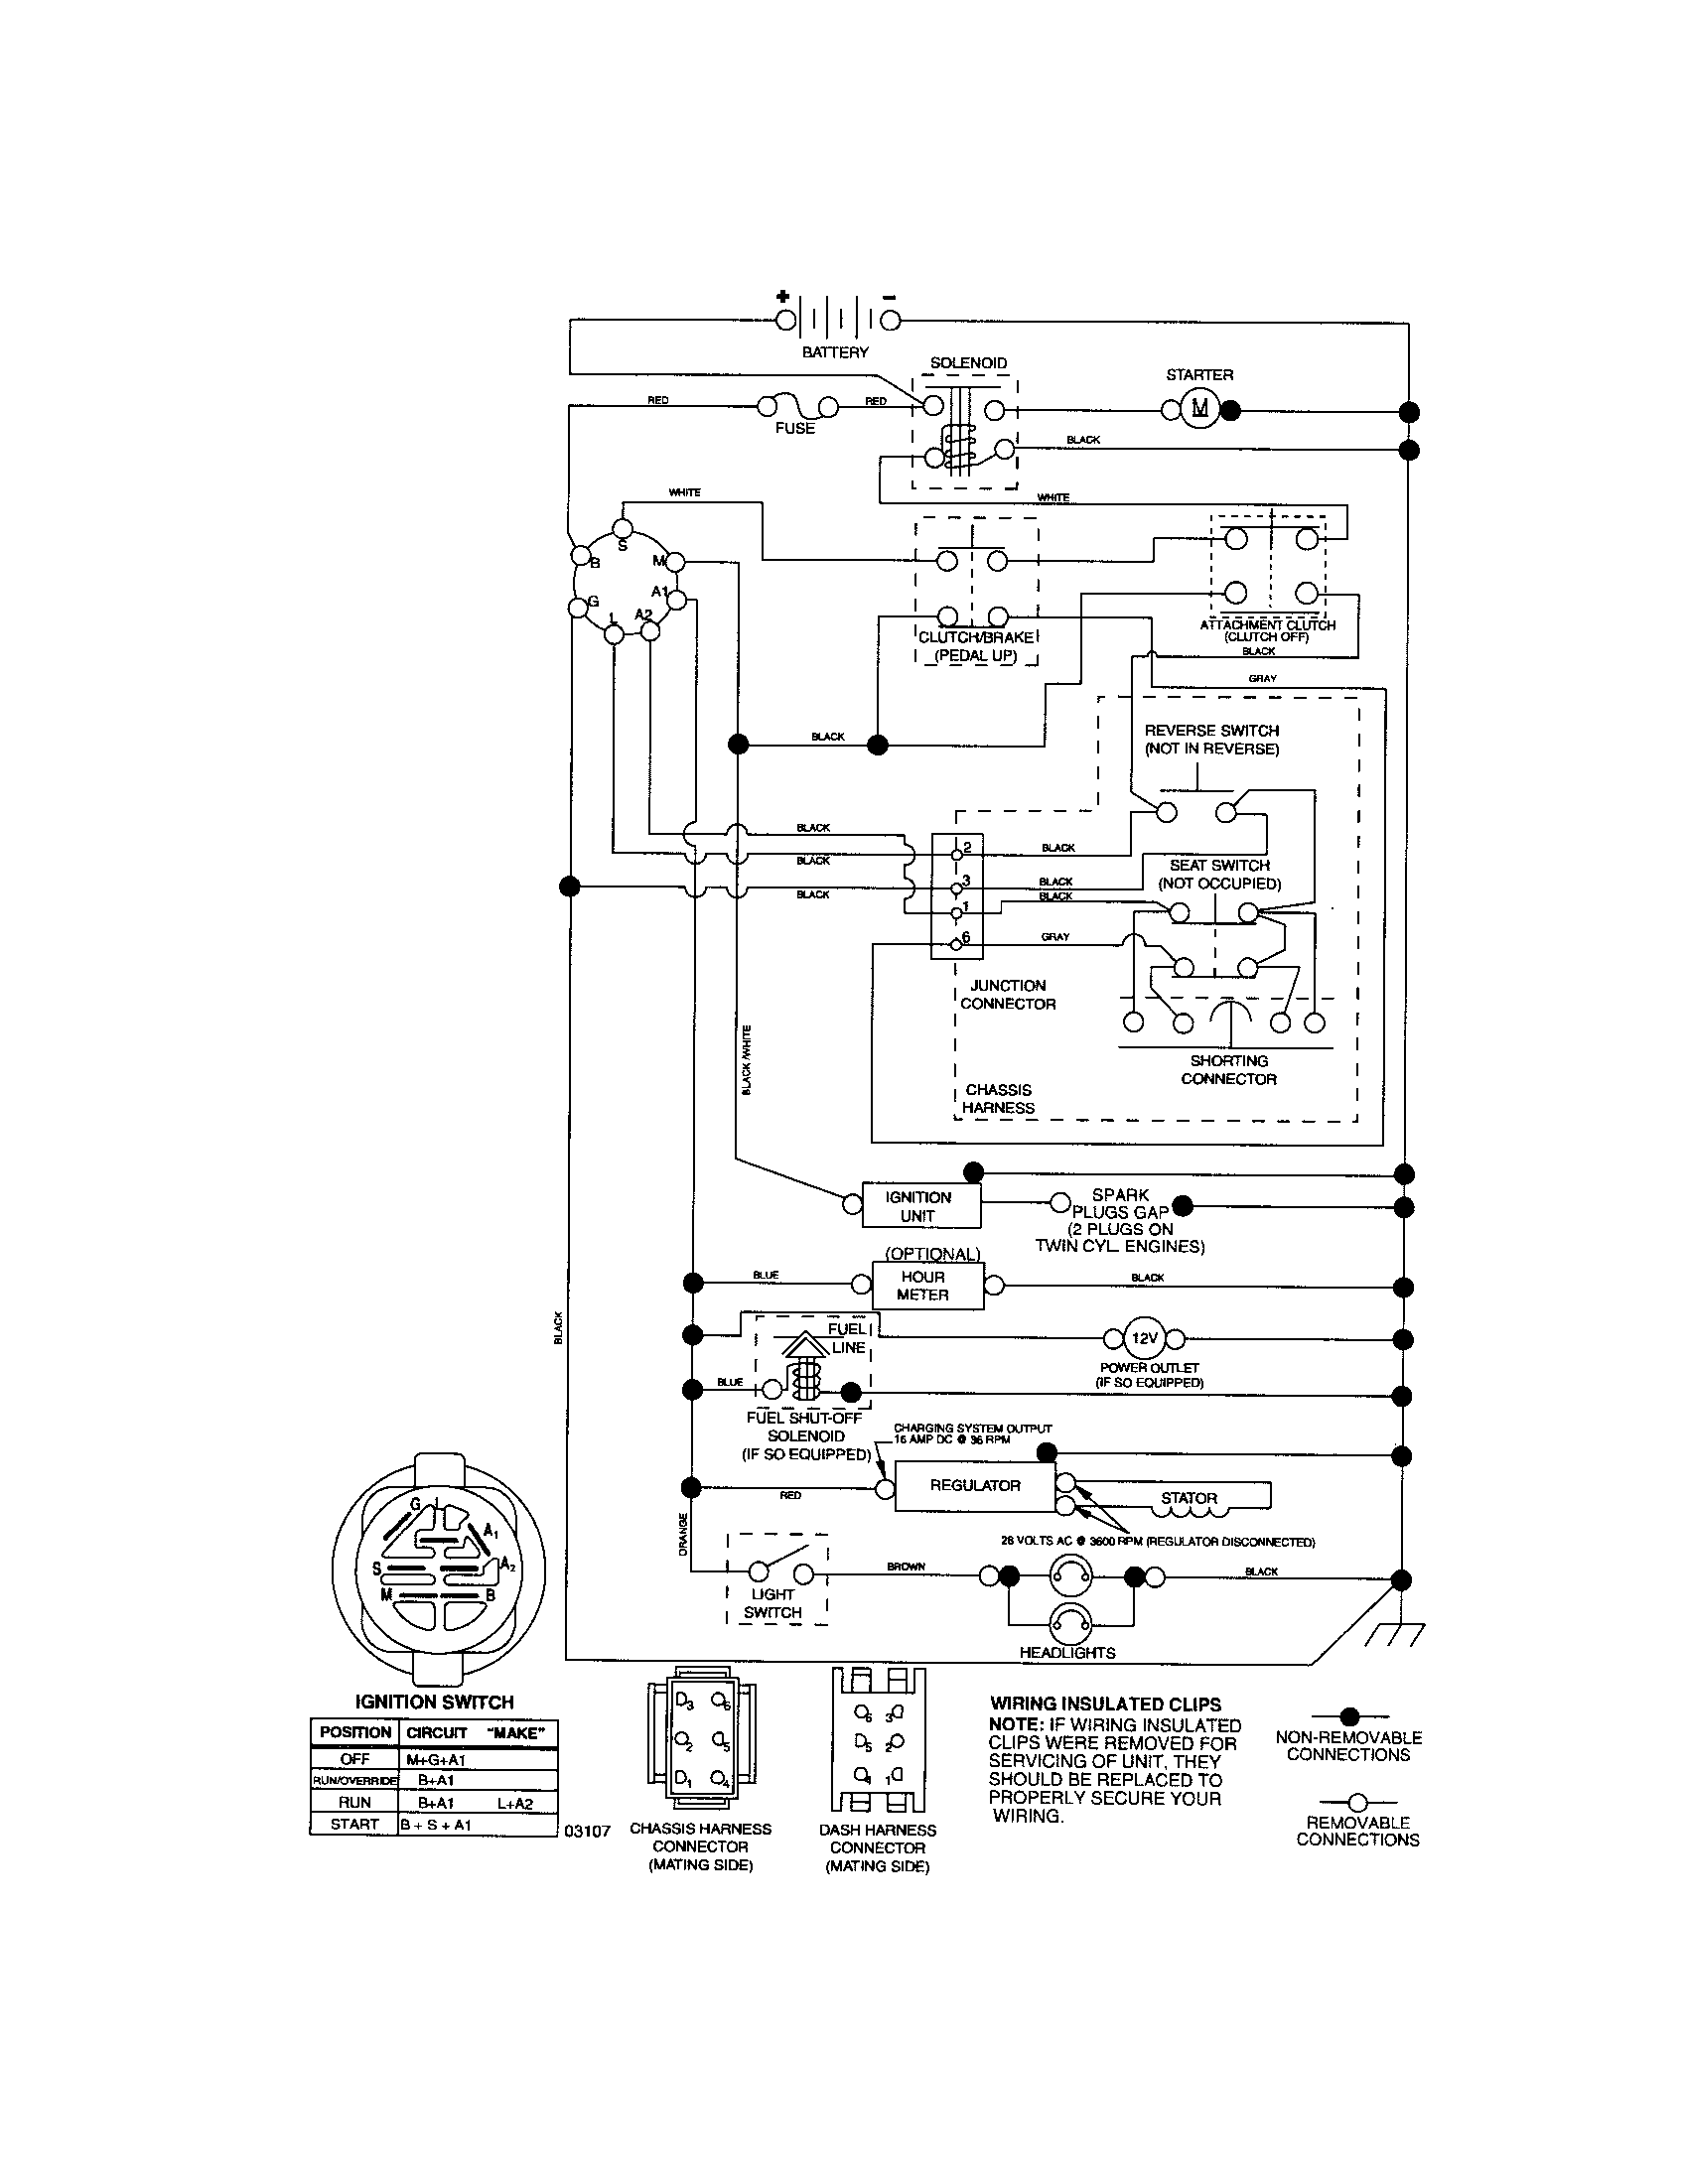 6af5f1447fd13c8443376822ddc1e105 craftsman riding mower electrical diagram wiring diagram racing mower wiring diagram at reclaimingppi.co